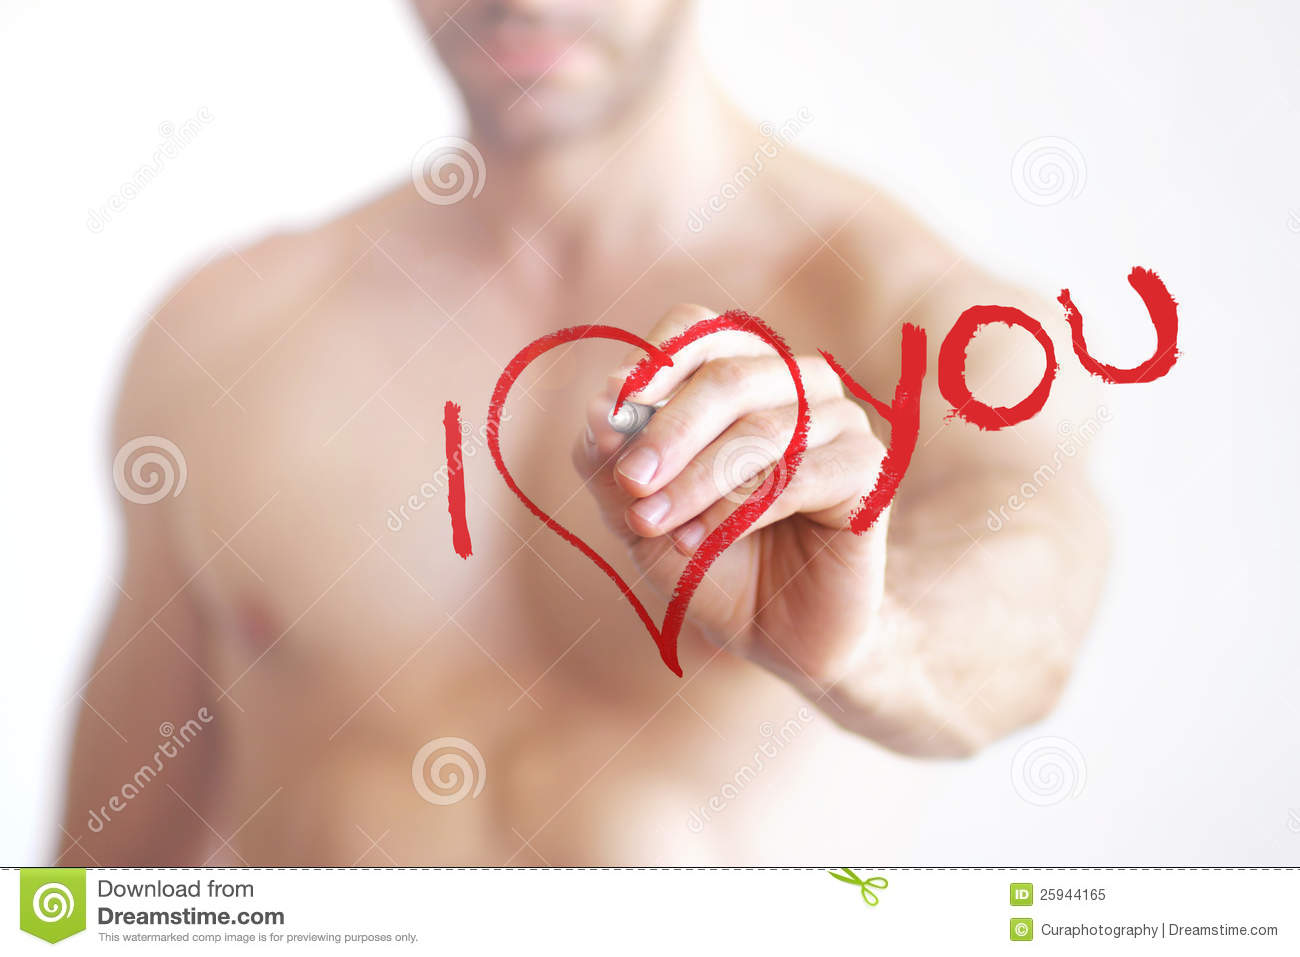 i-love-you-nude